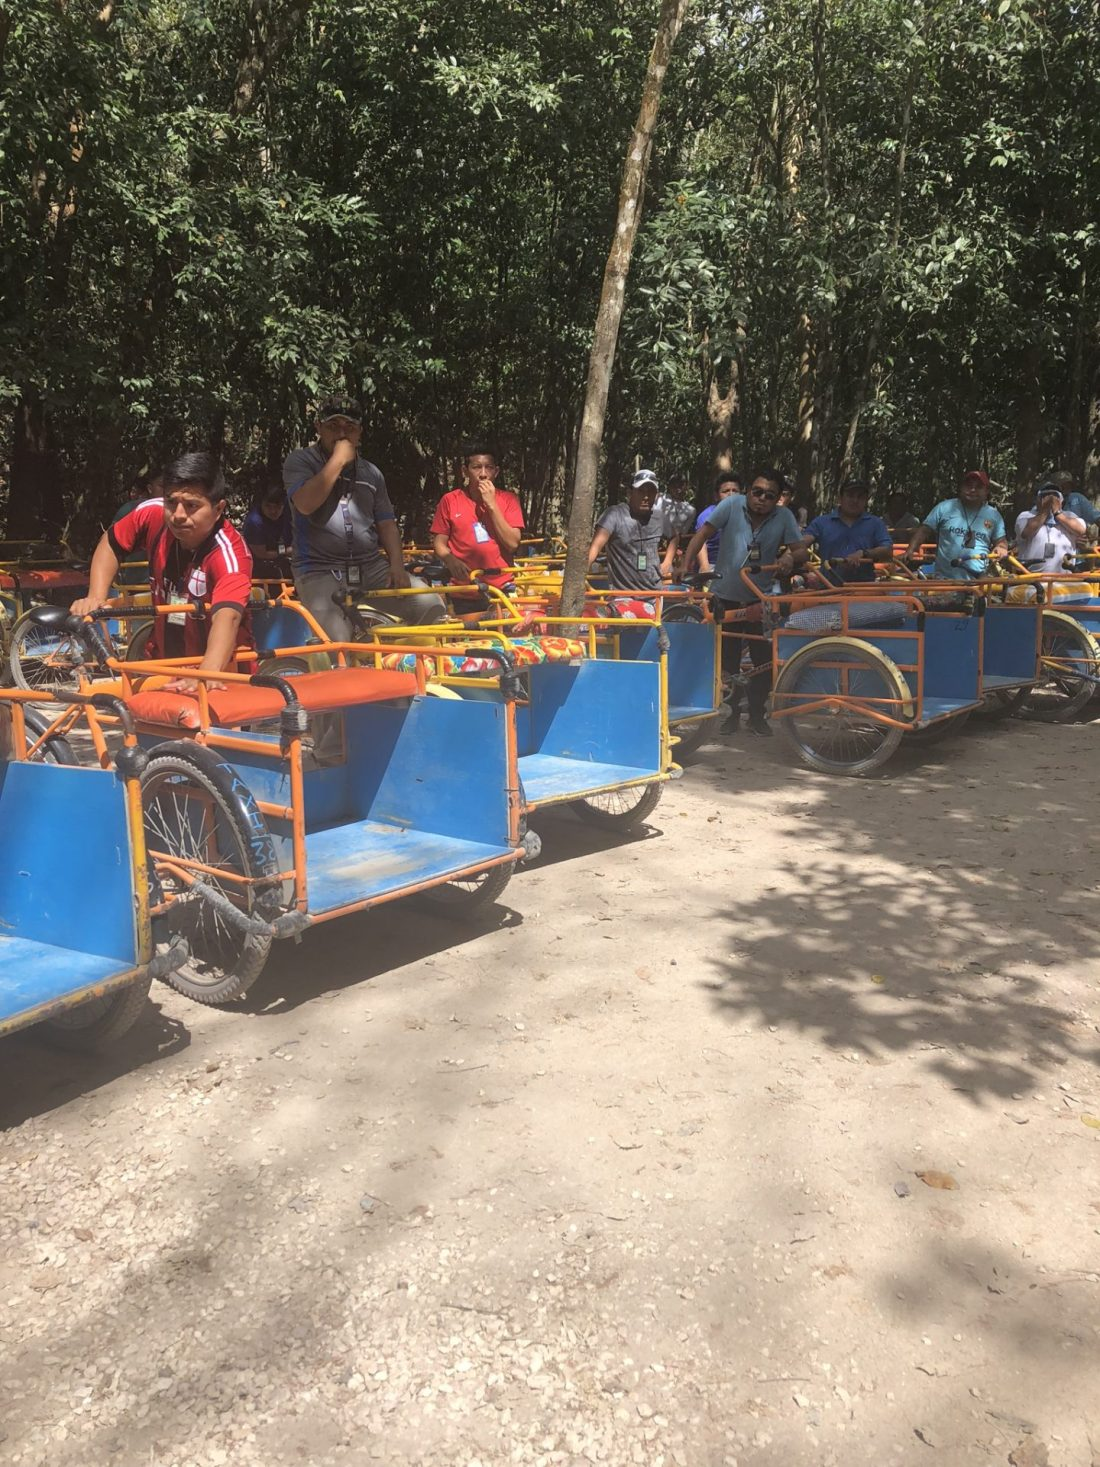 Tricycles in Coba, Mexico